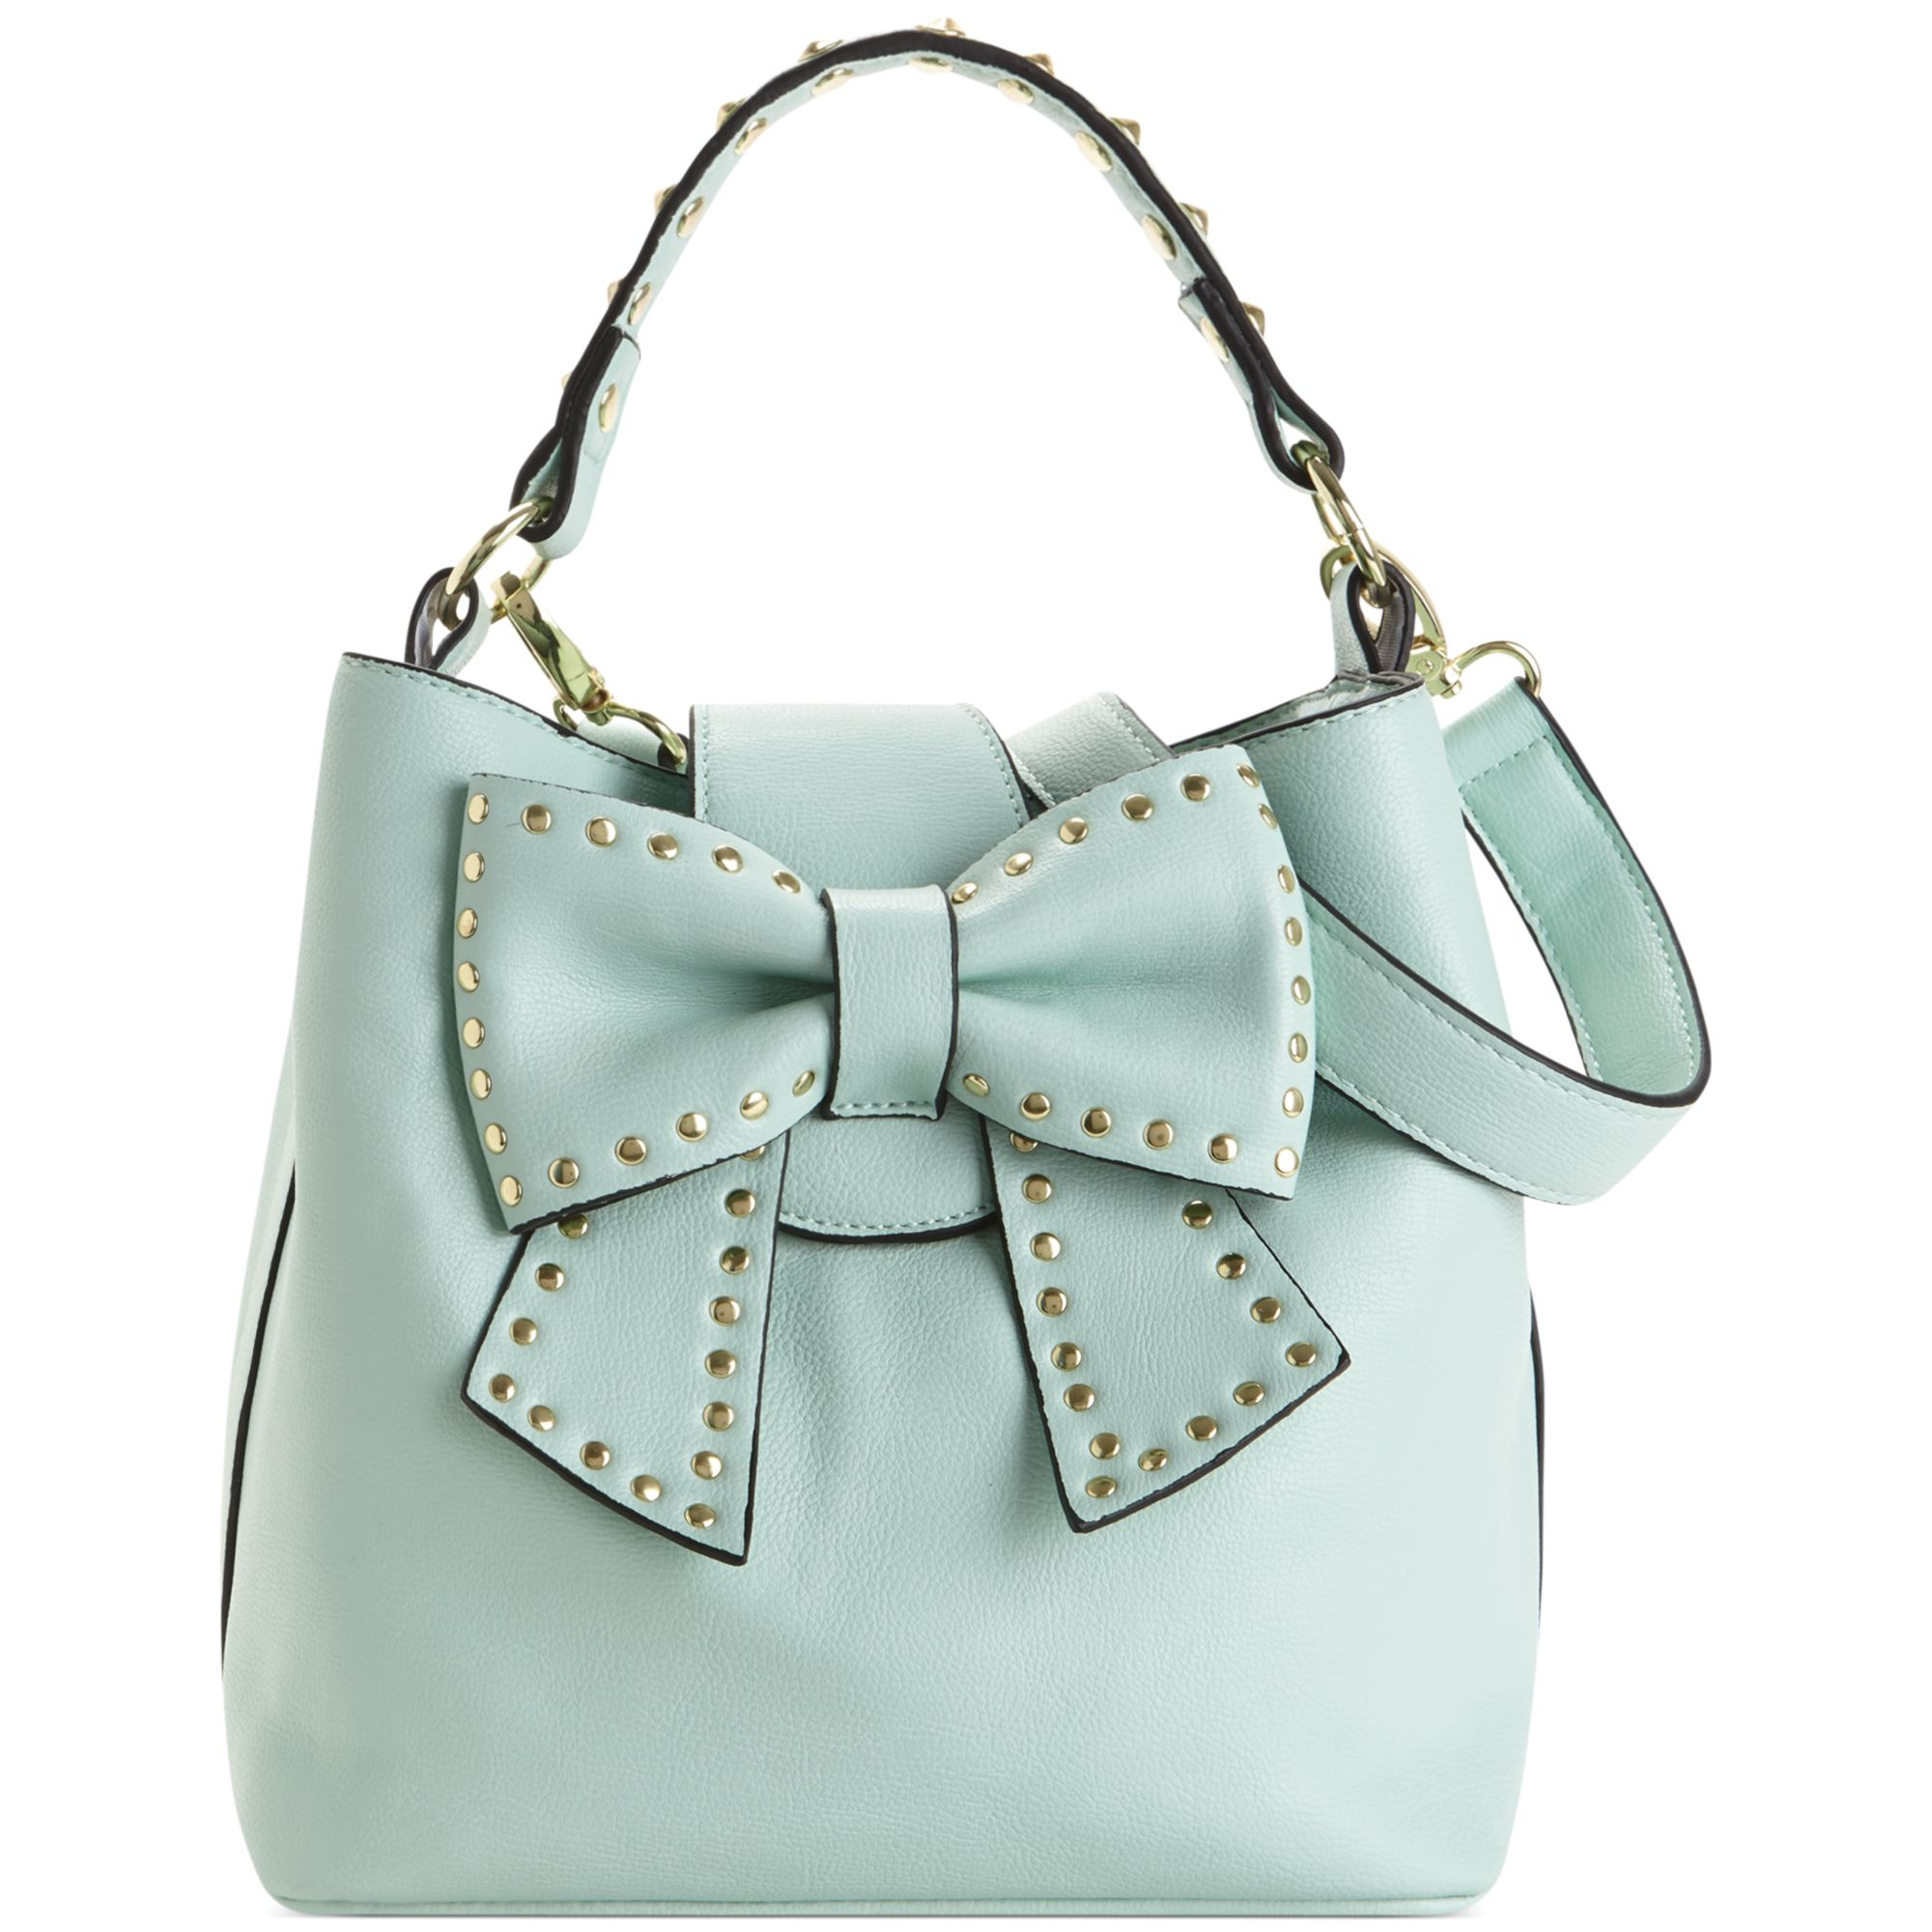 Betsey Johnson Hopeless Romantic Bucket Bag In Green Mint